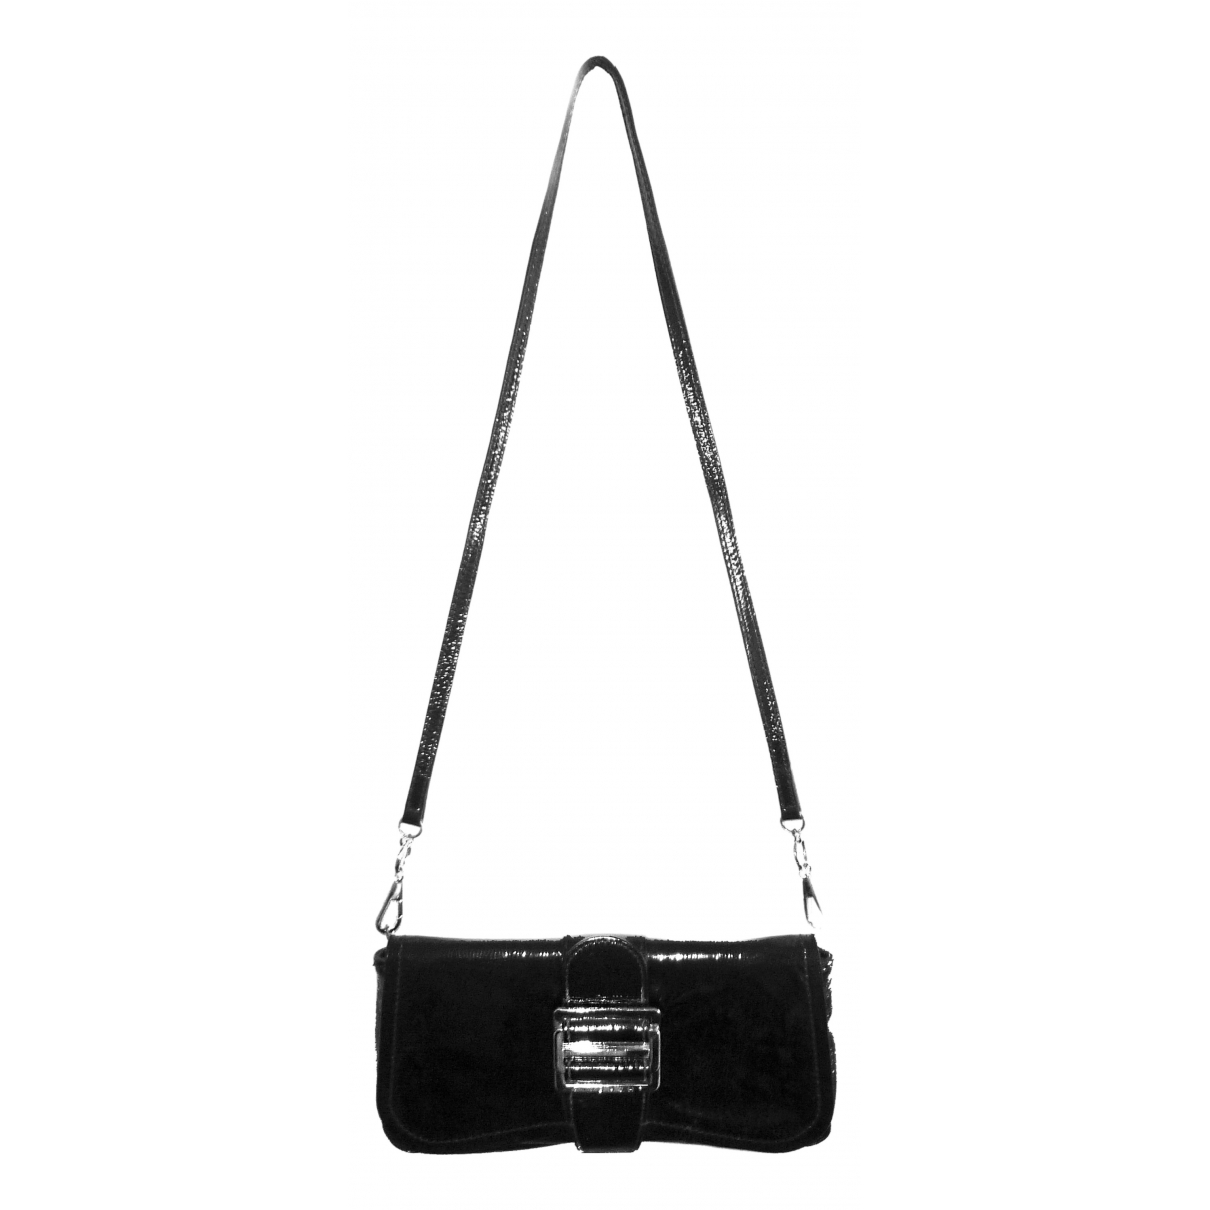 Givenchy \N Clutch in  Schwarz Lackleder